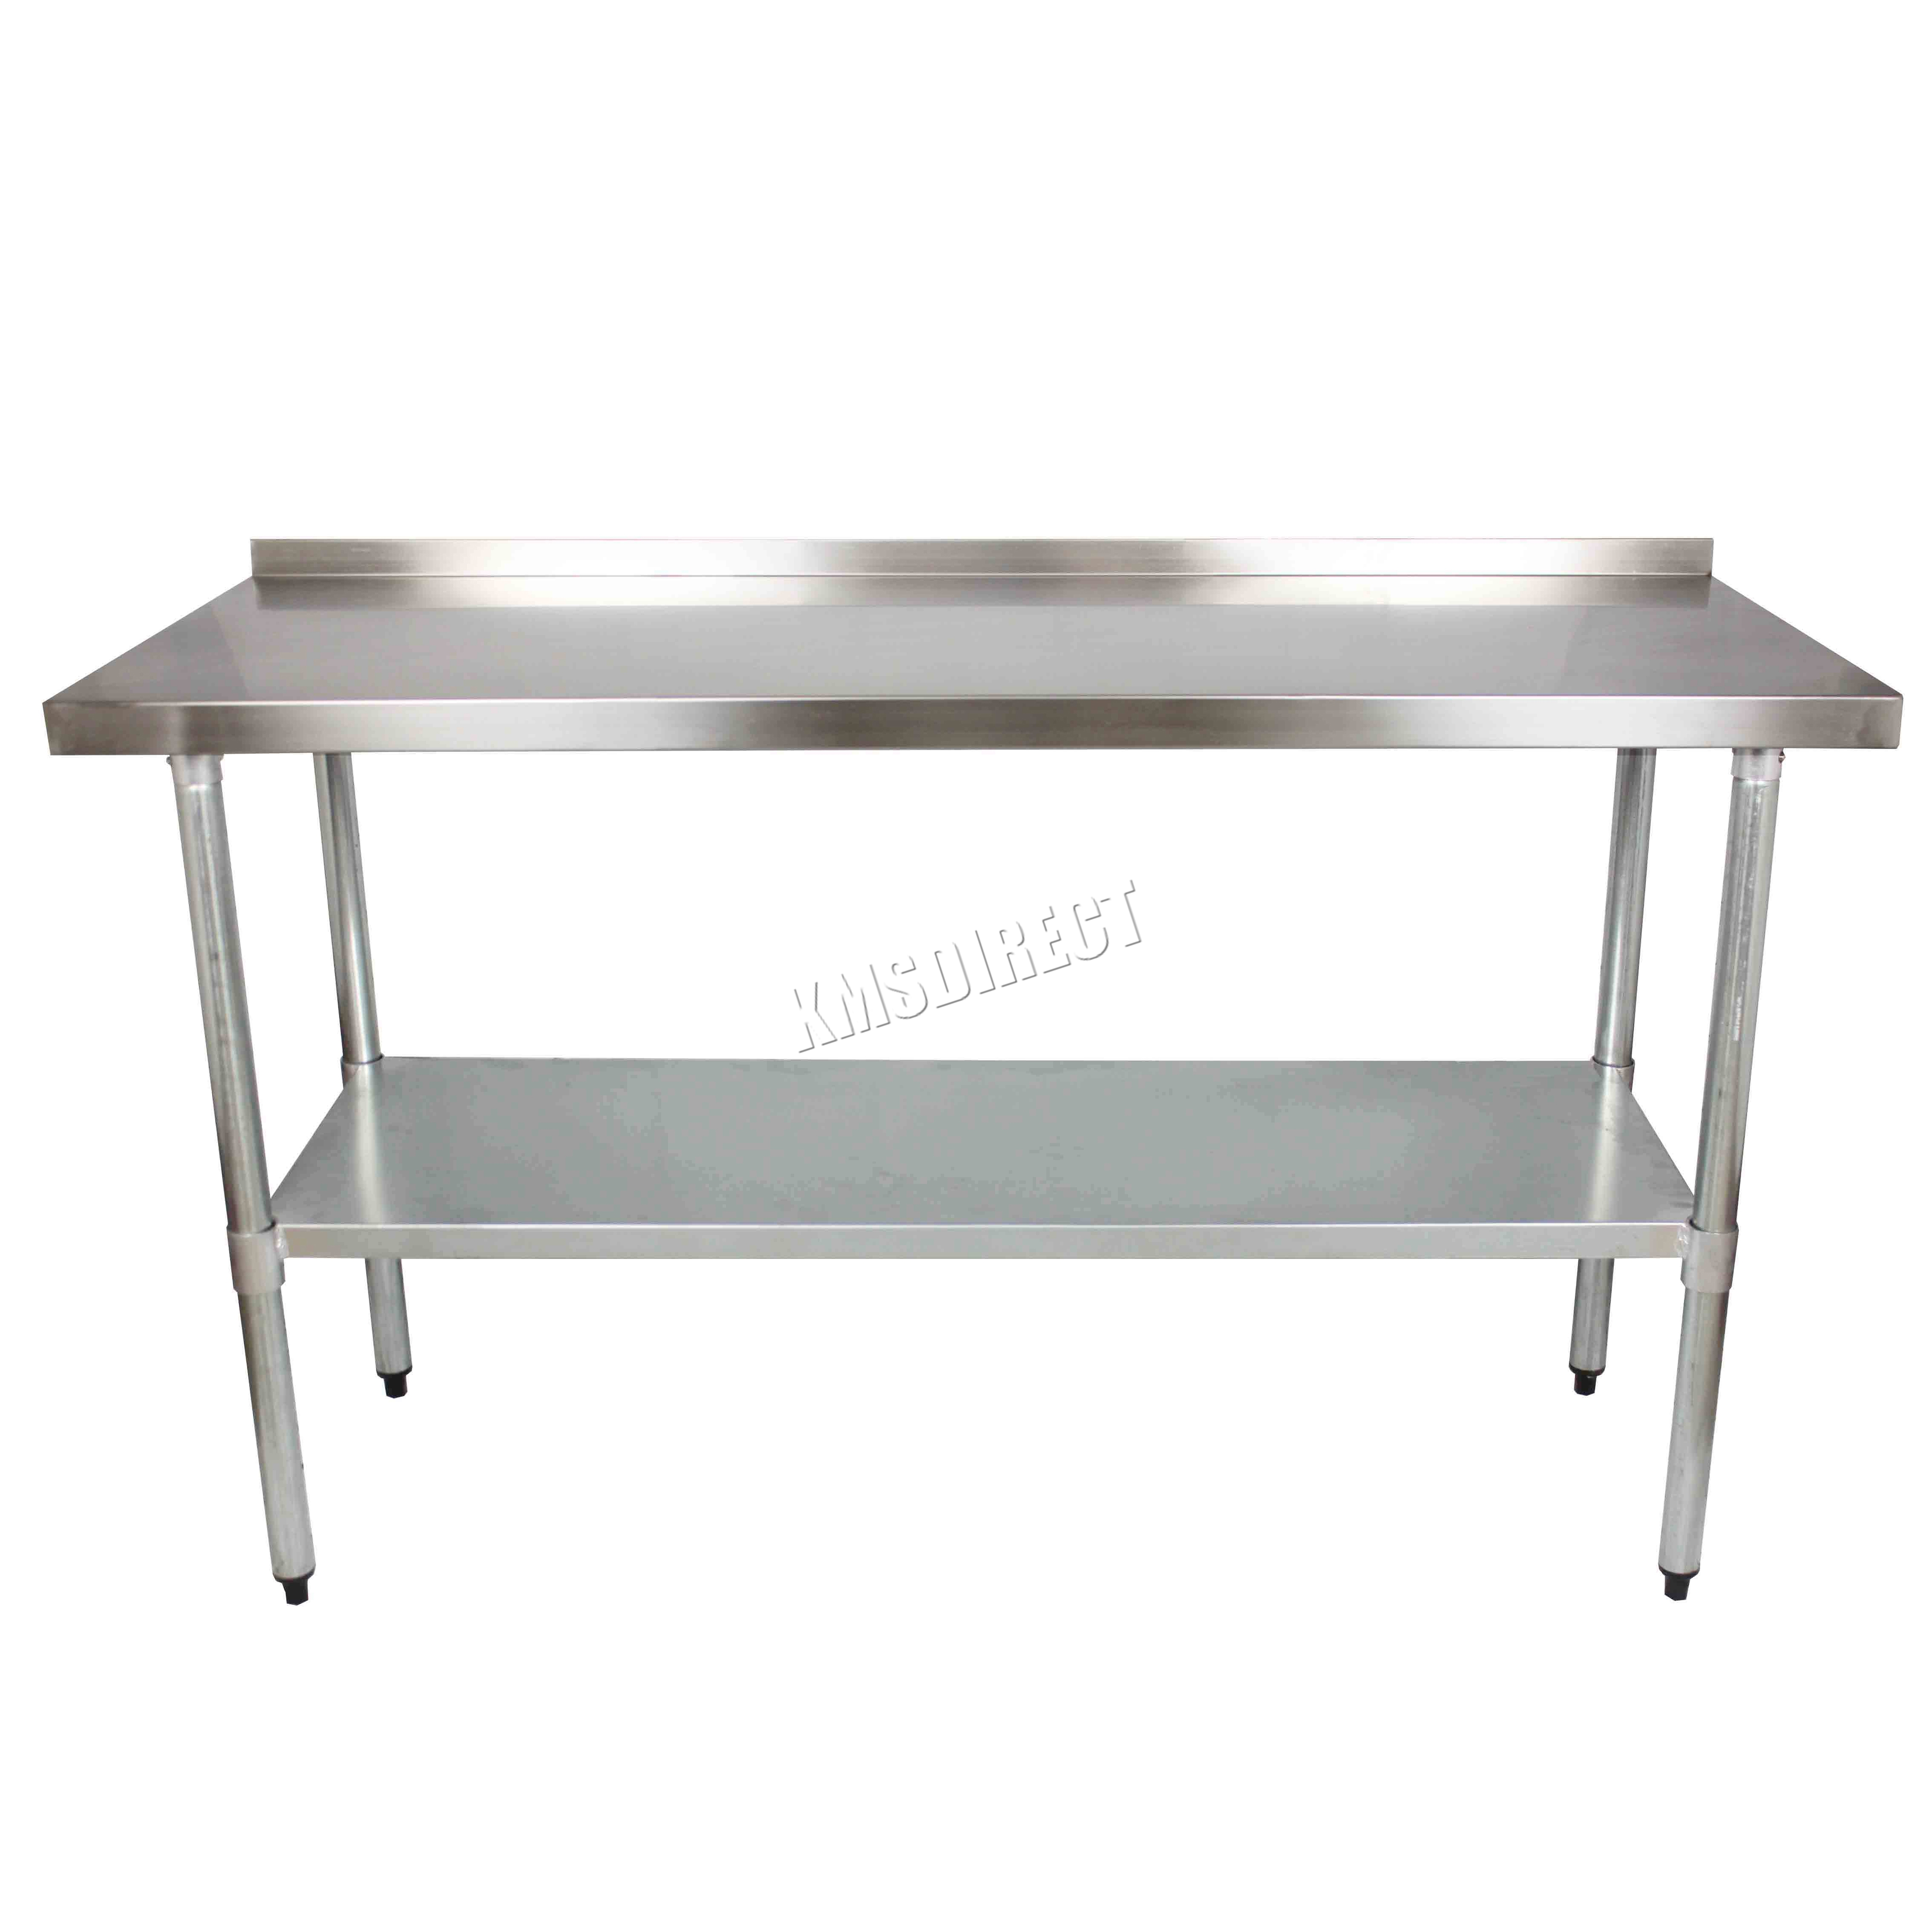 clear steel eichholtz stainless cross table criss top frame coffee glass tables polished